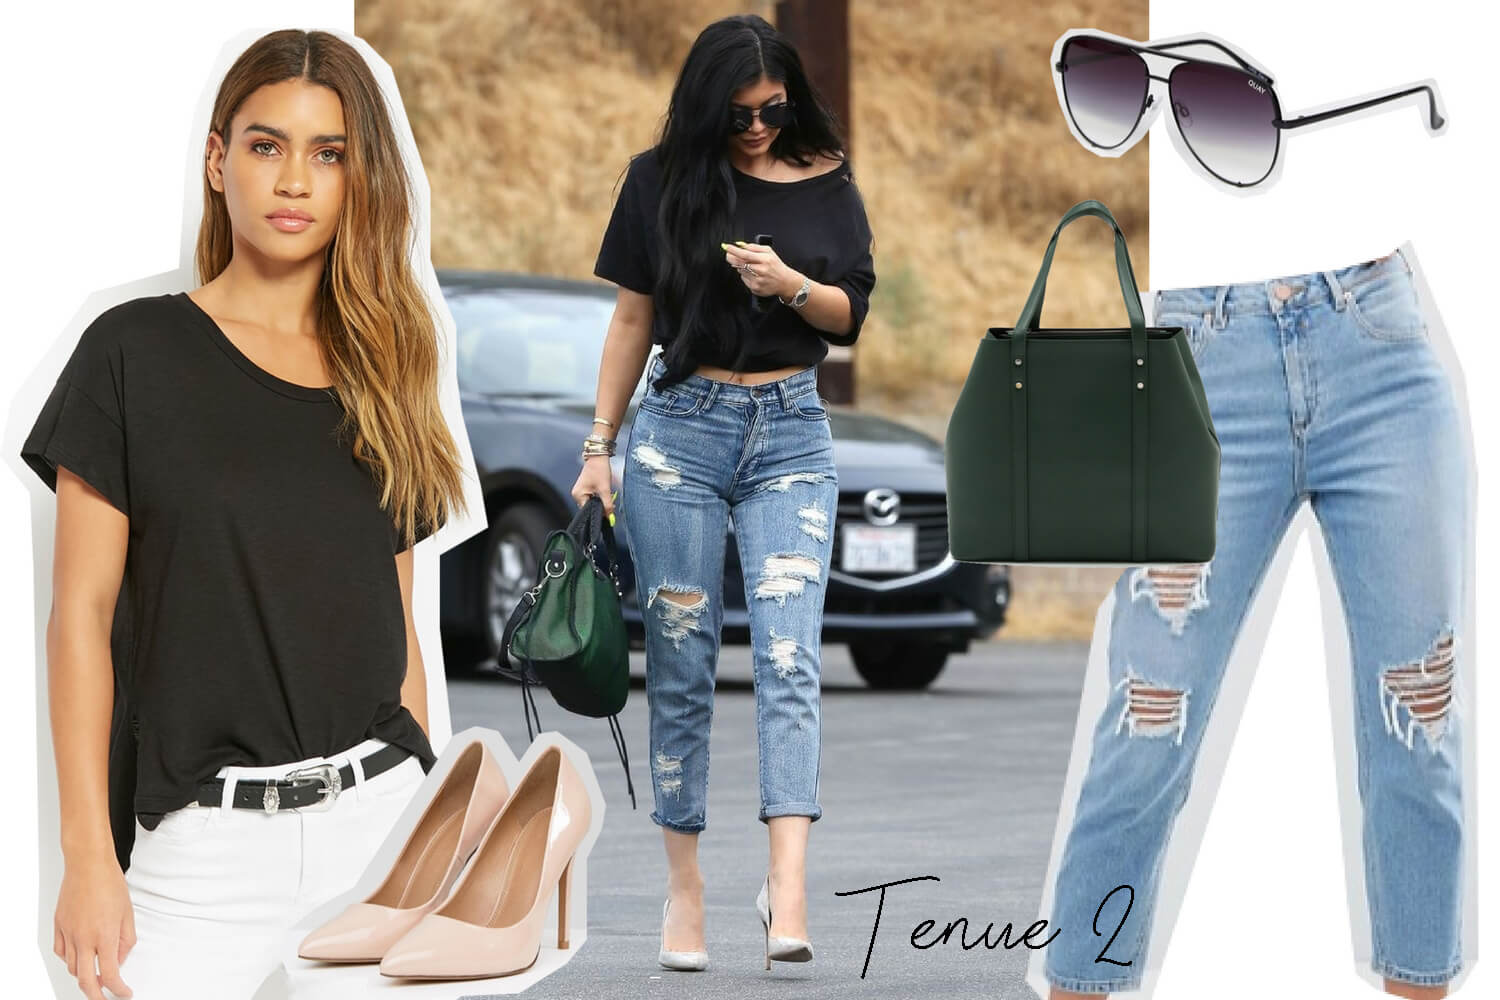 Get the look Kylie Jenner. Tenue 2 | happinesscoco.com